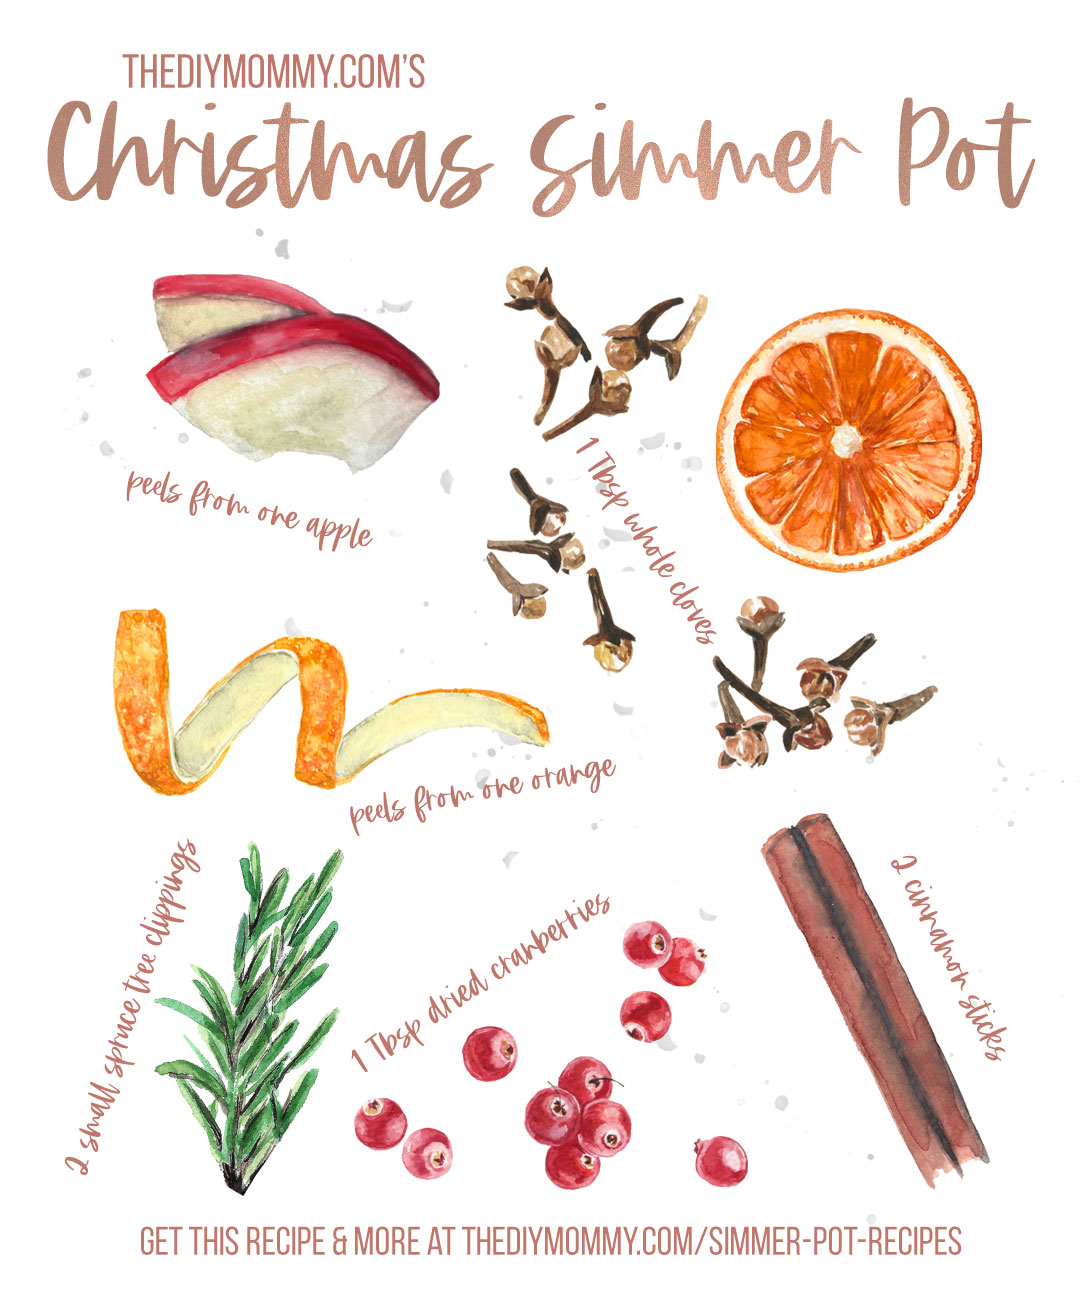 Combine these ingredients in 2 cups of simmering water to create a beautiful Christmas scent in your home. Full recipe at thediymommy.com